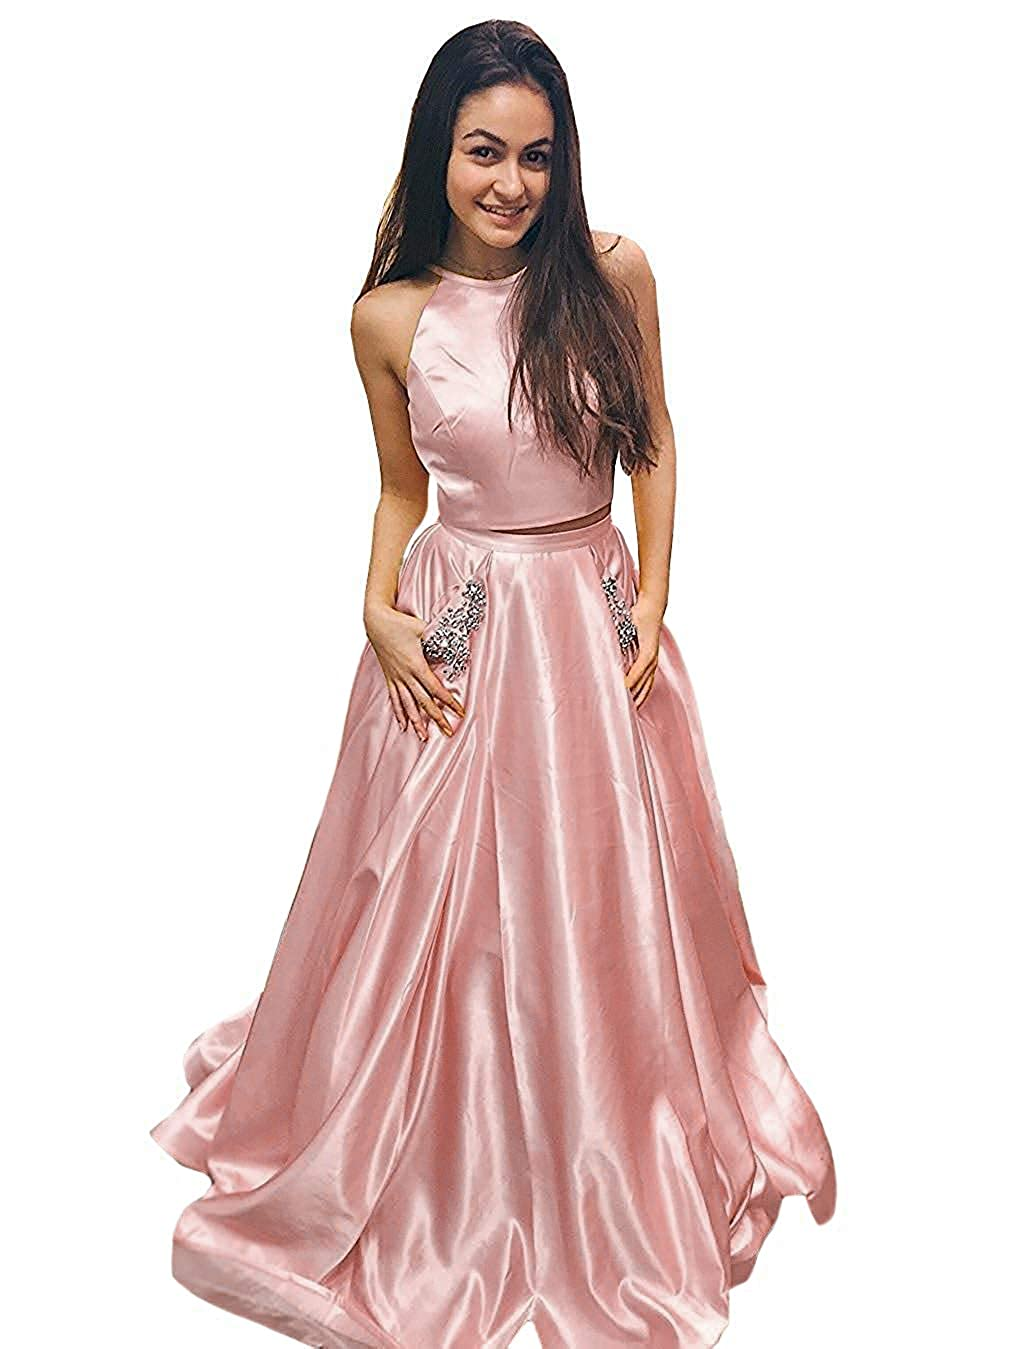 bluesh Pink FTBY Two Piece Prom Dresses with Pockets 2019 Beaded Long Satin Open Back Evening Dress Womens Formal Gowns